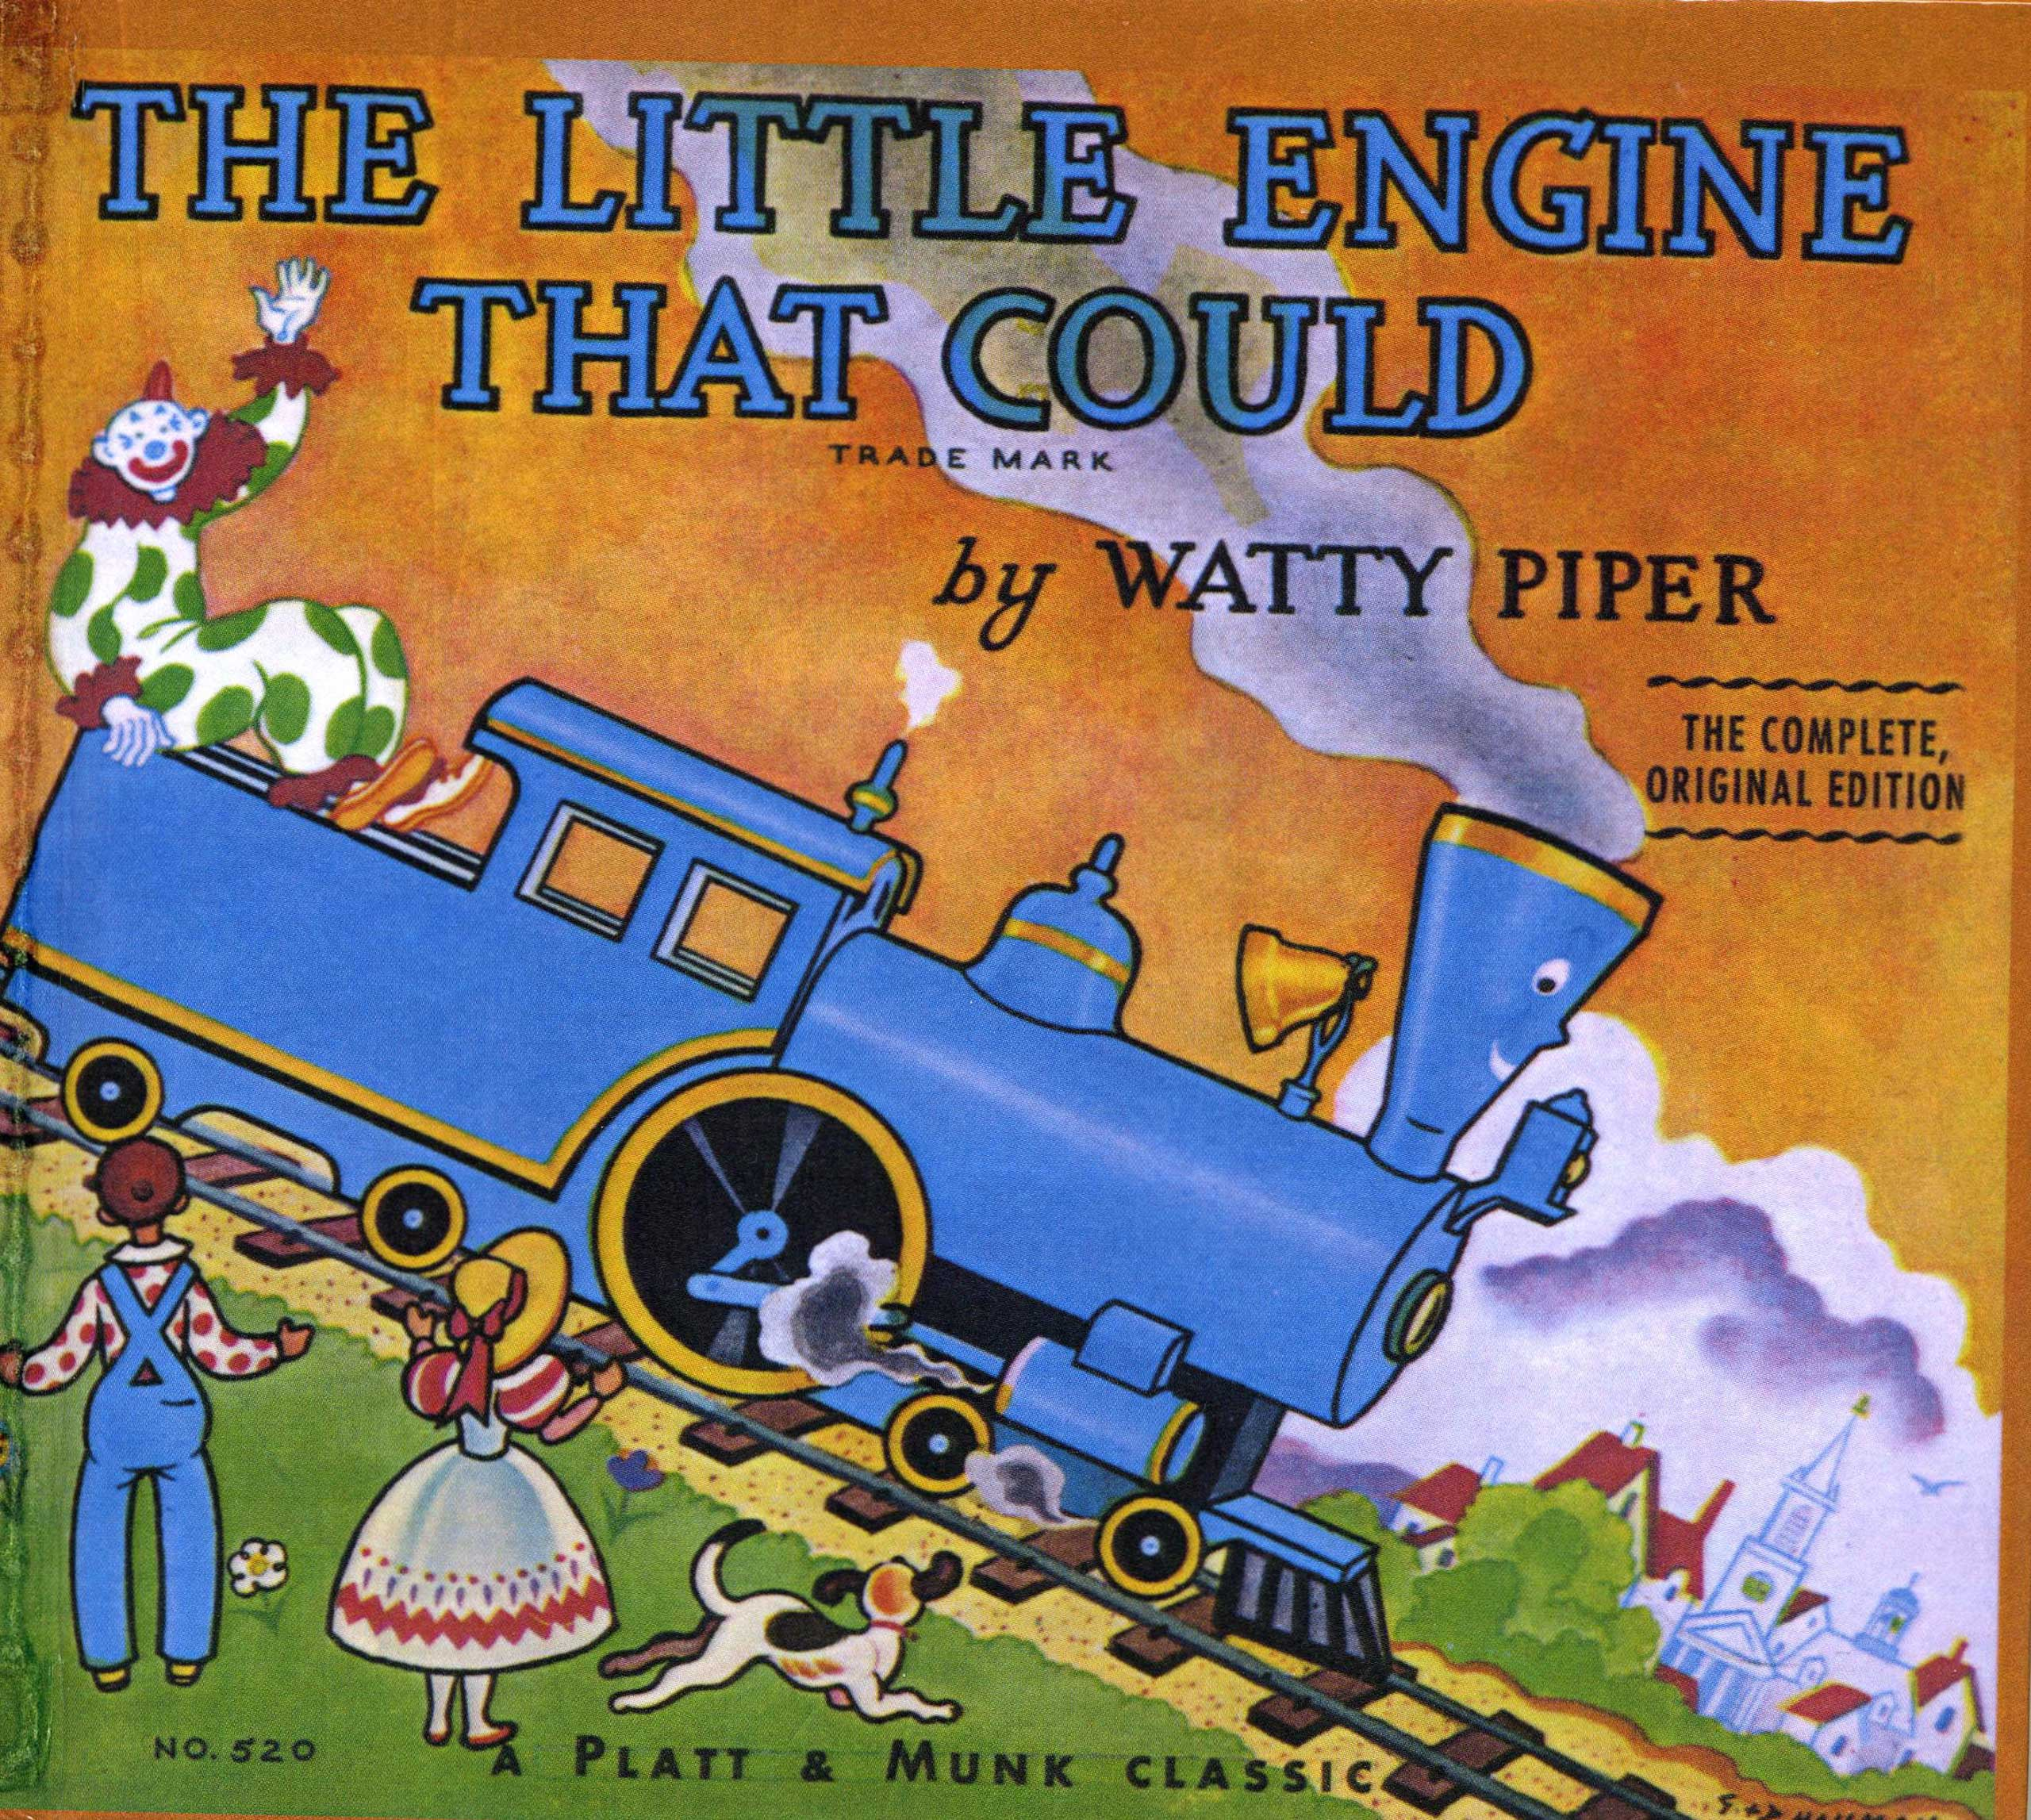 The Little Engine That Could, by Watty Piper.                                                                                                                            This tale of self-motivation has echoed through generations:  I think I can—I think I can...                                                                                              Buy now: The Little Engine That Could